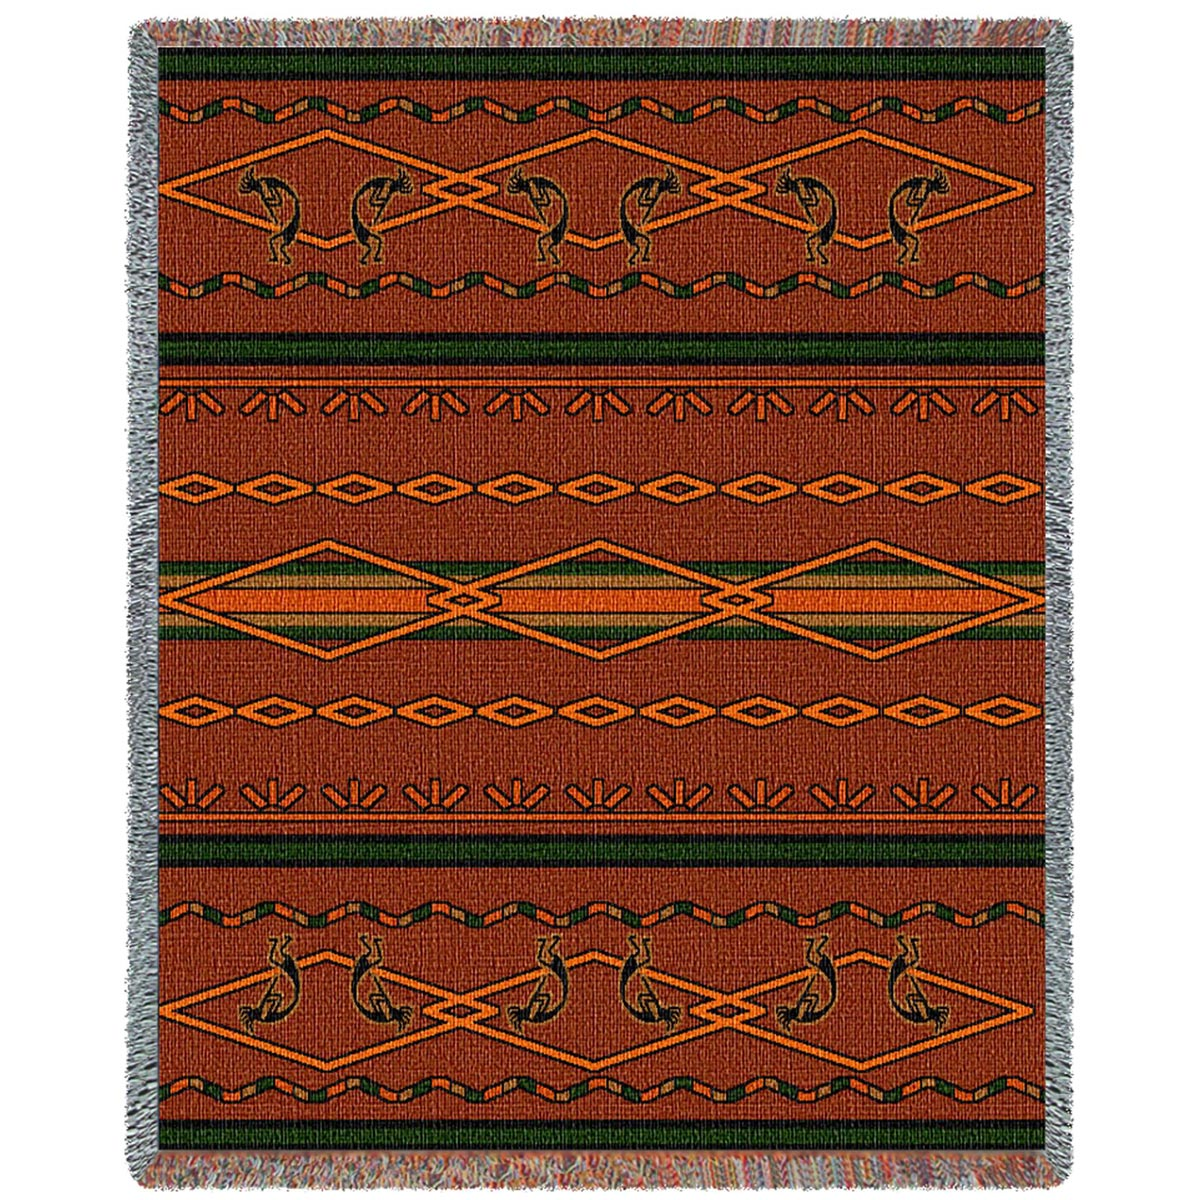 Southwest Russet and Green Blanket